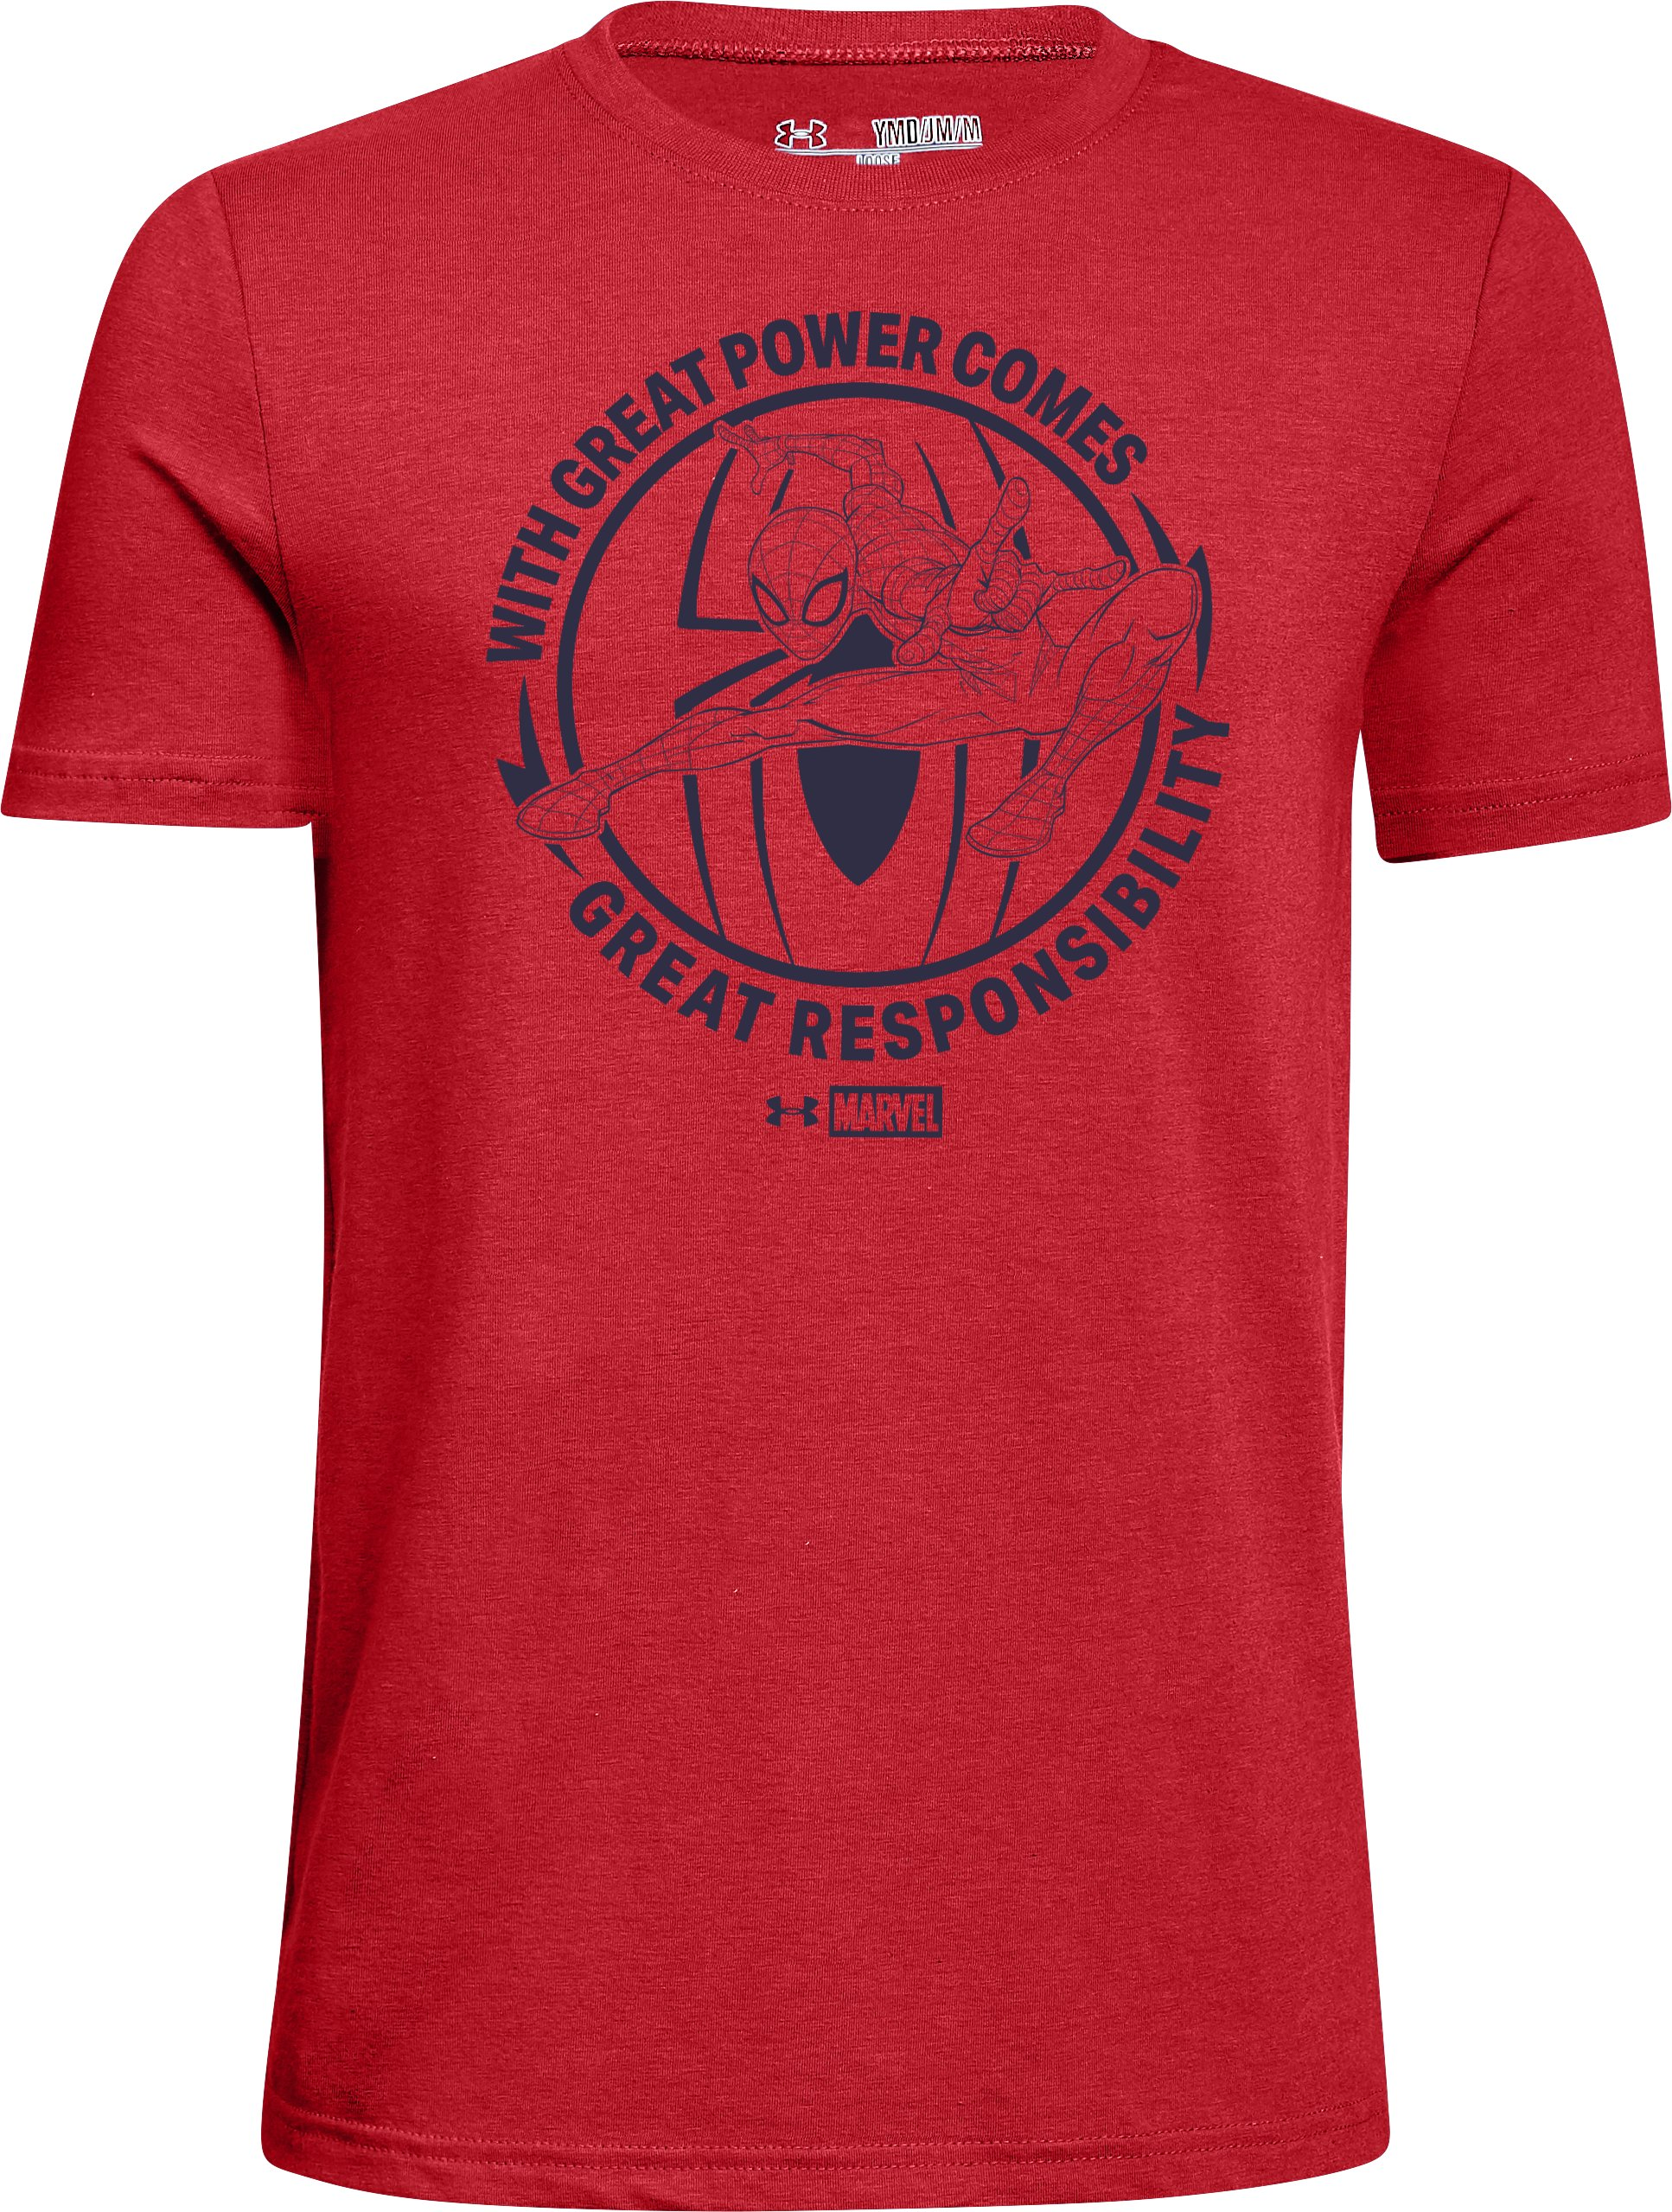 Boys' UA Spiderman Great Power T-Shirt, Red,